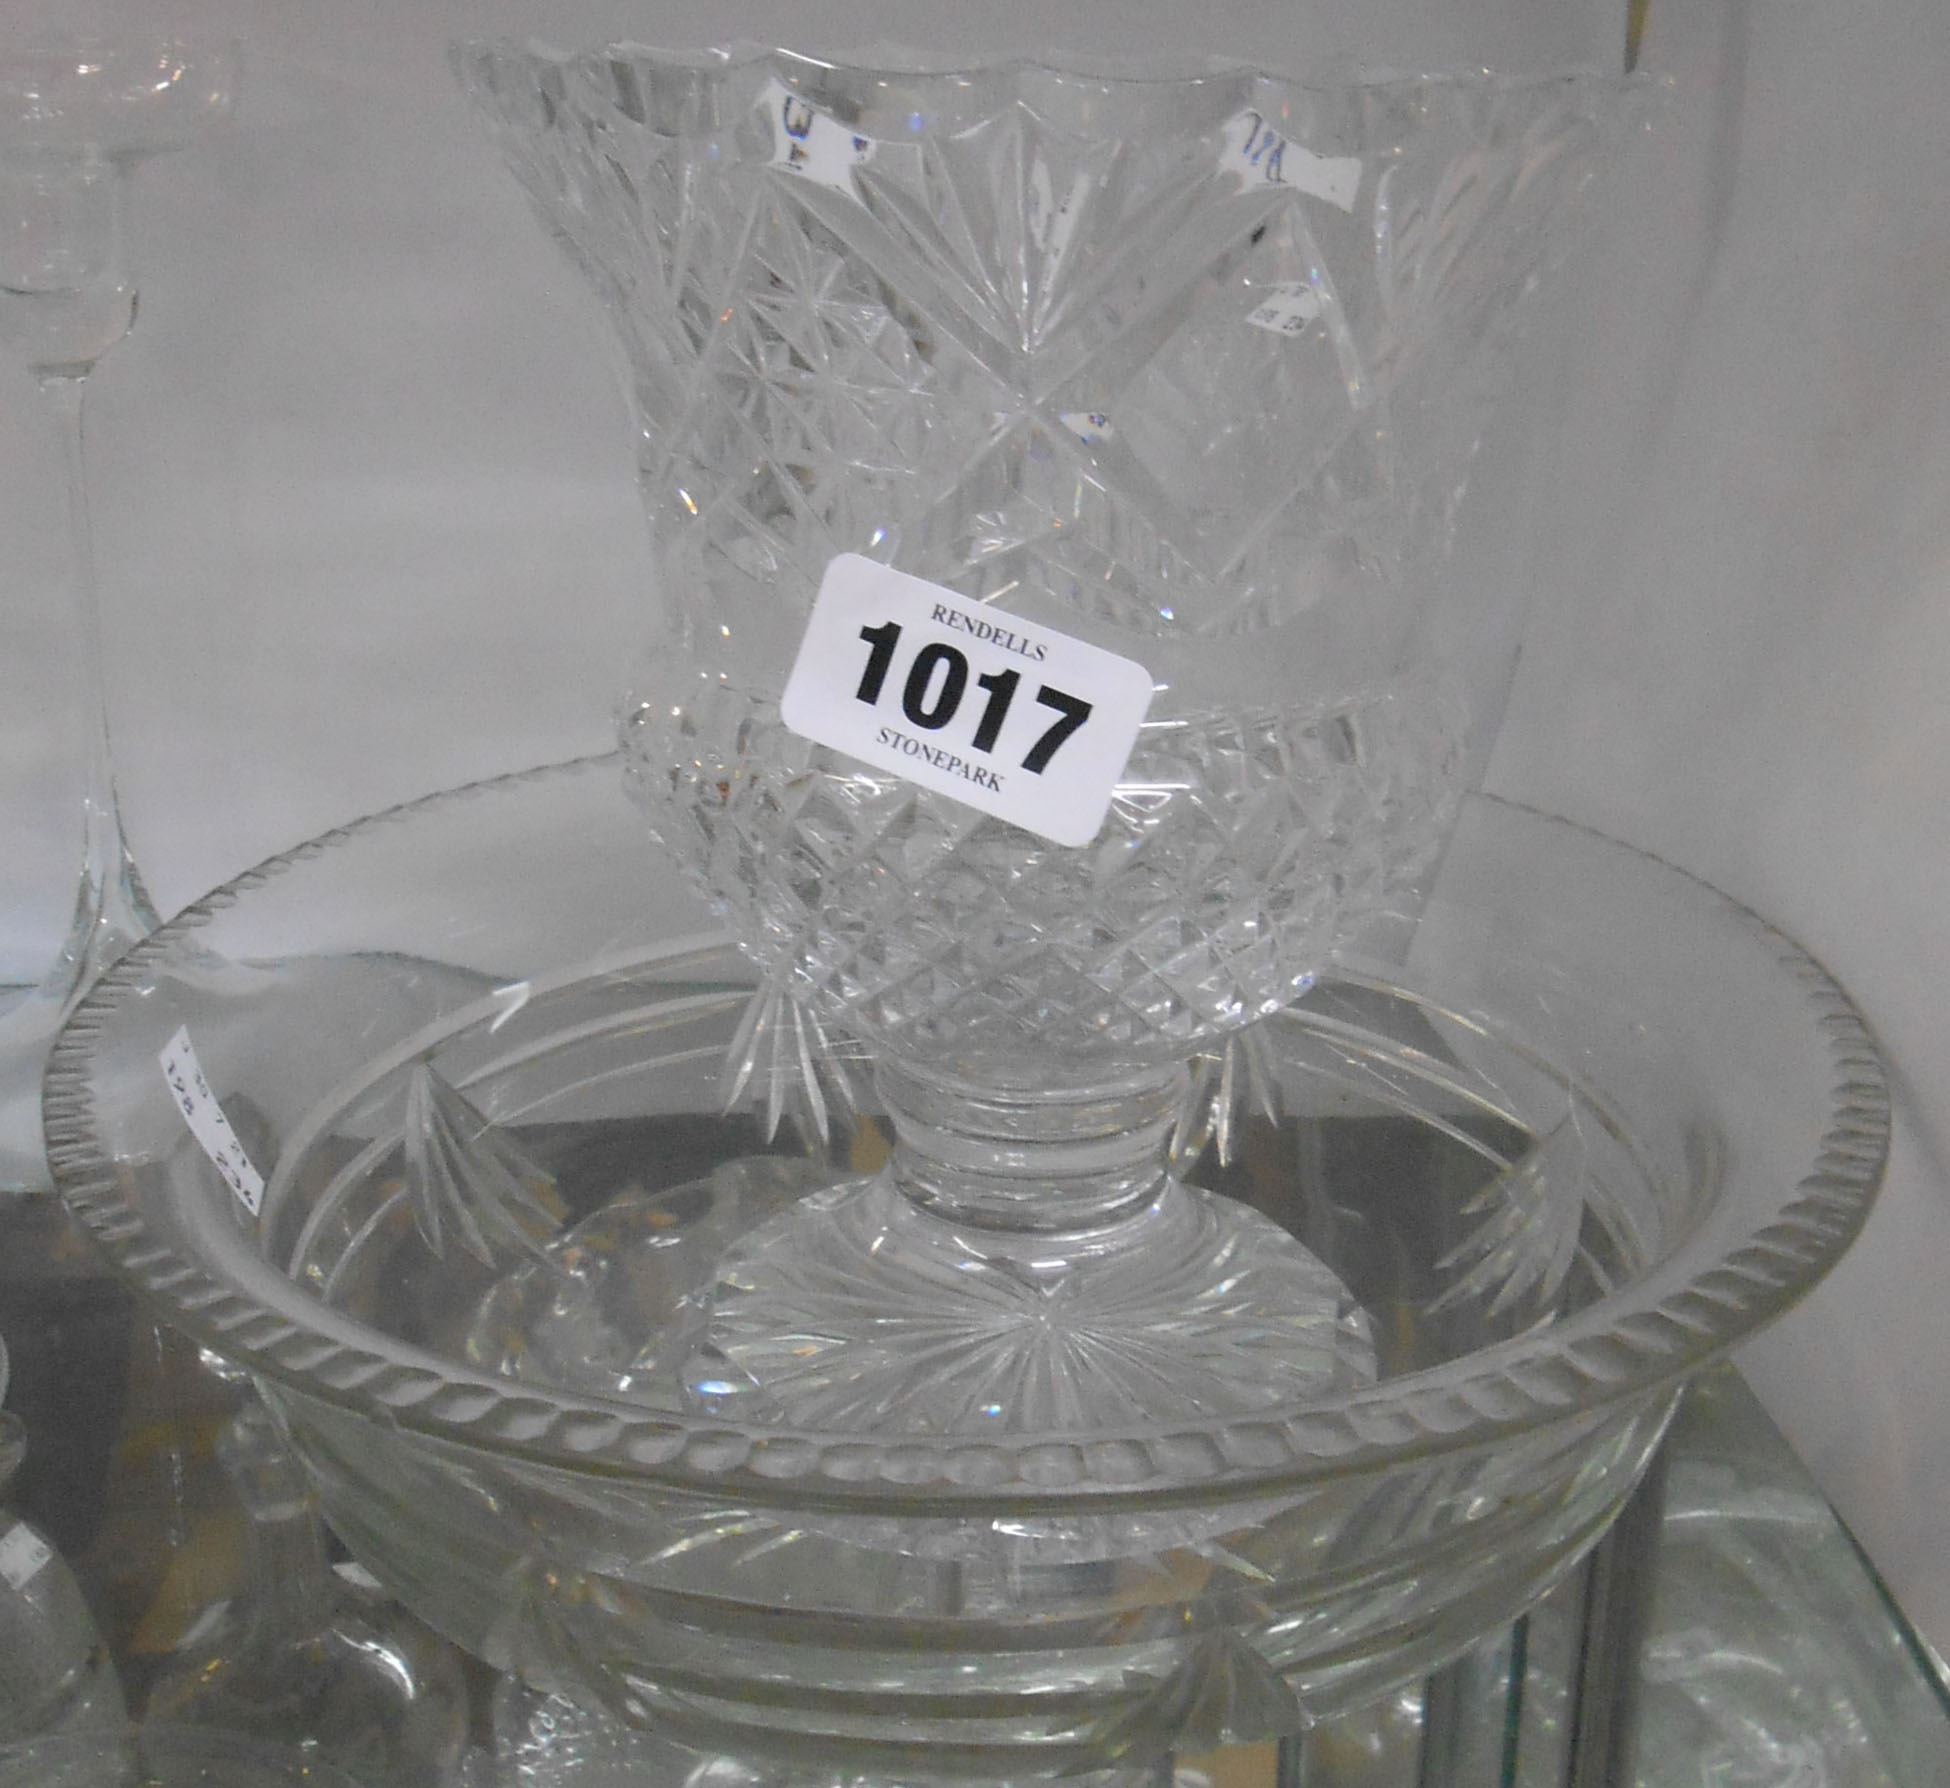 A 20th Century cut crystal vase decorated with hobnail and fan pattern - sold with a cut glass bowl